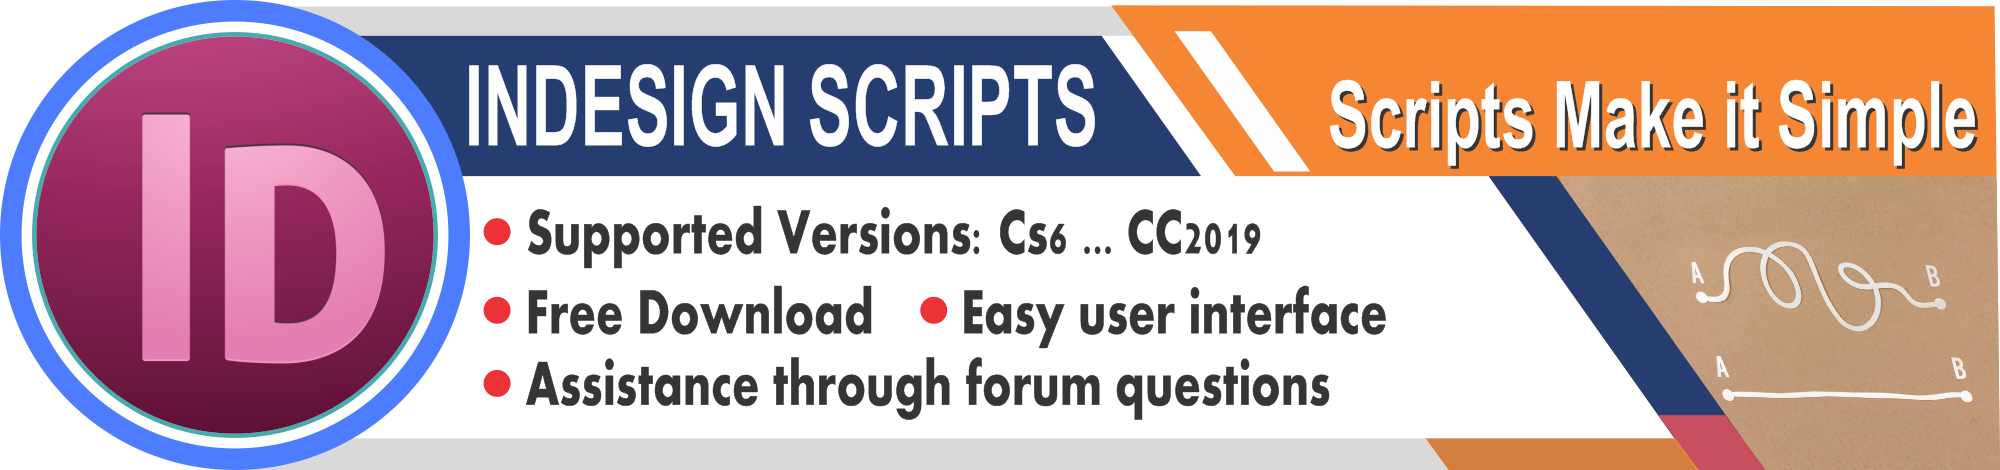 Download Indesign Scripts